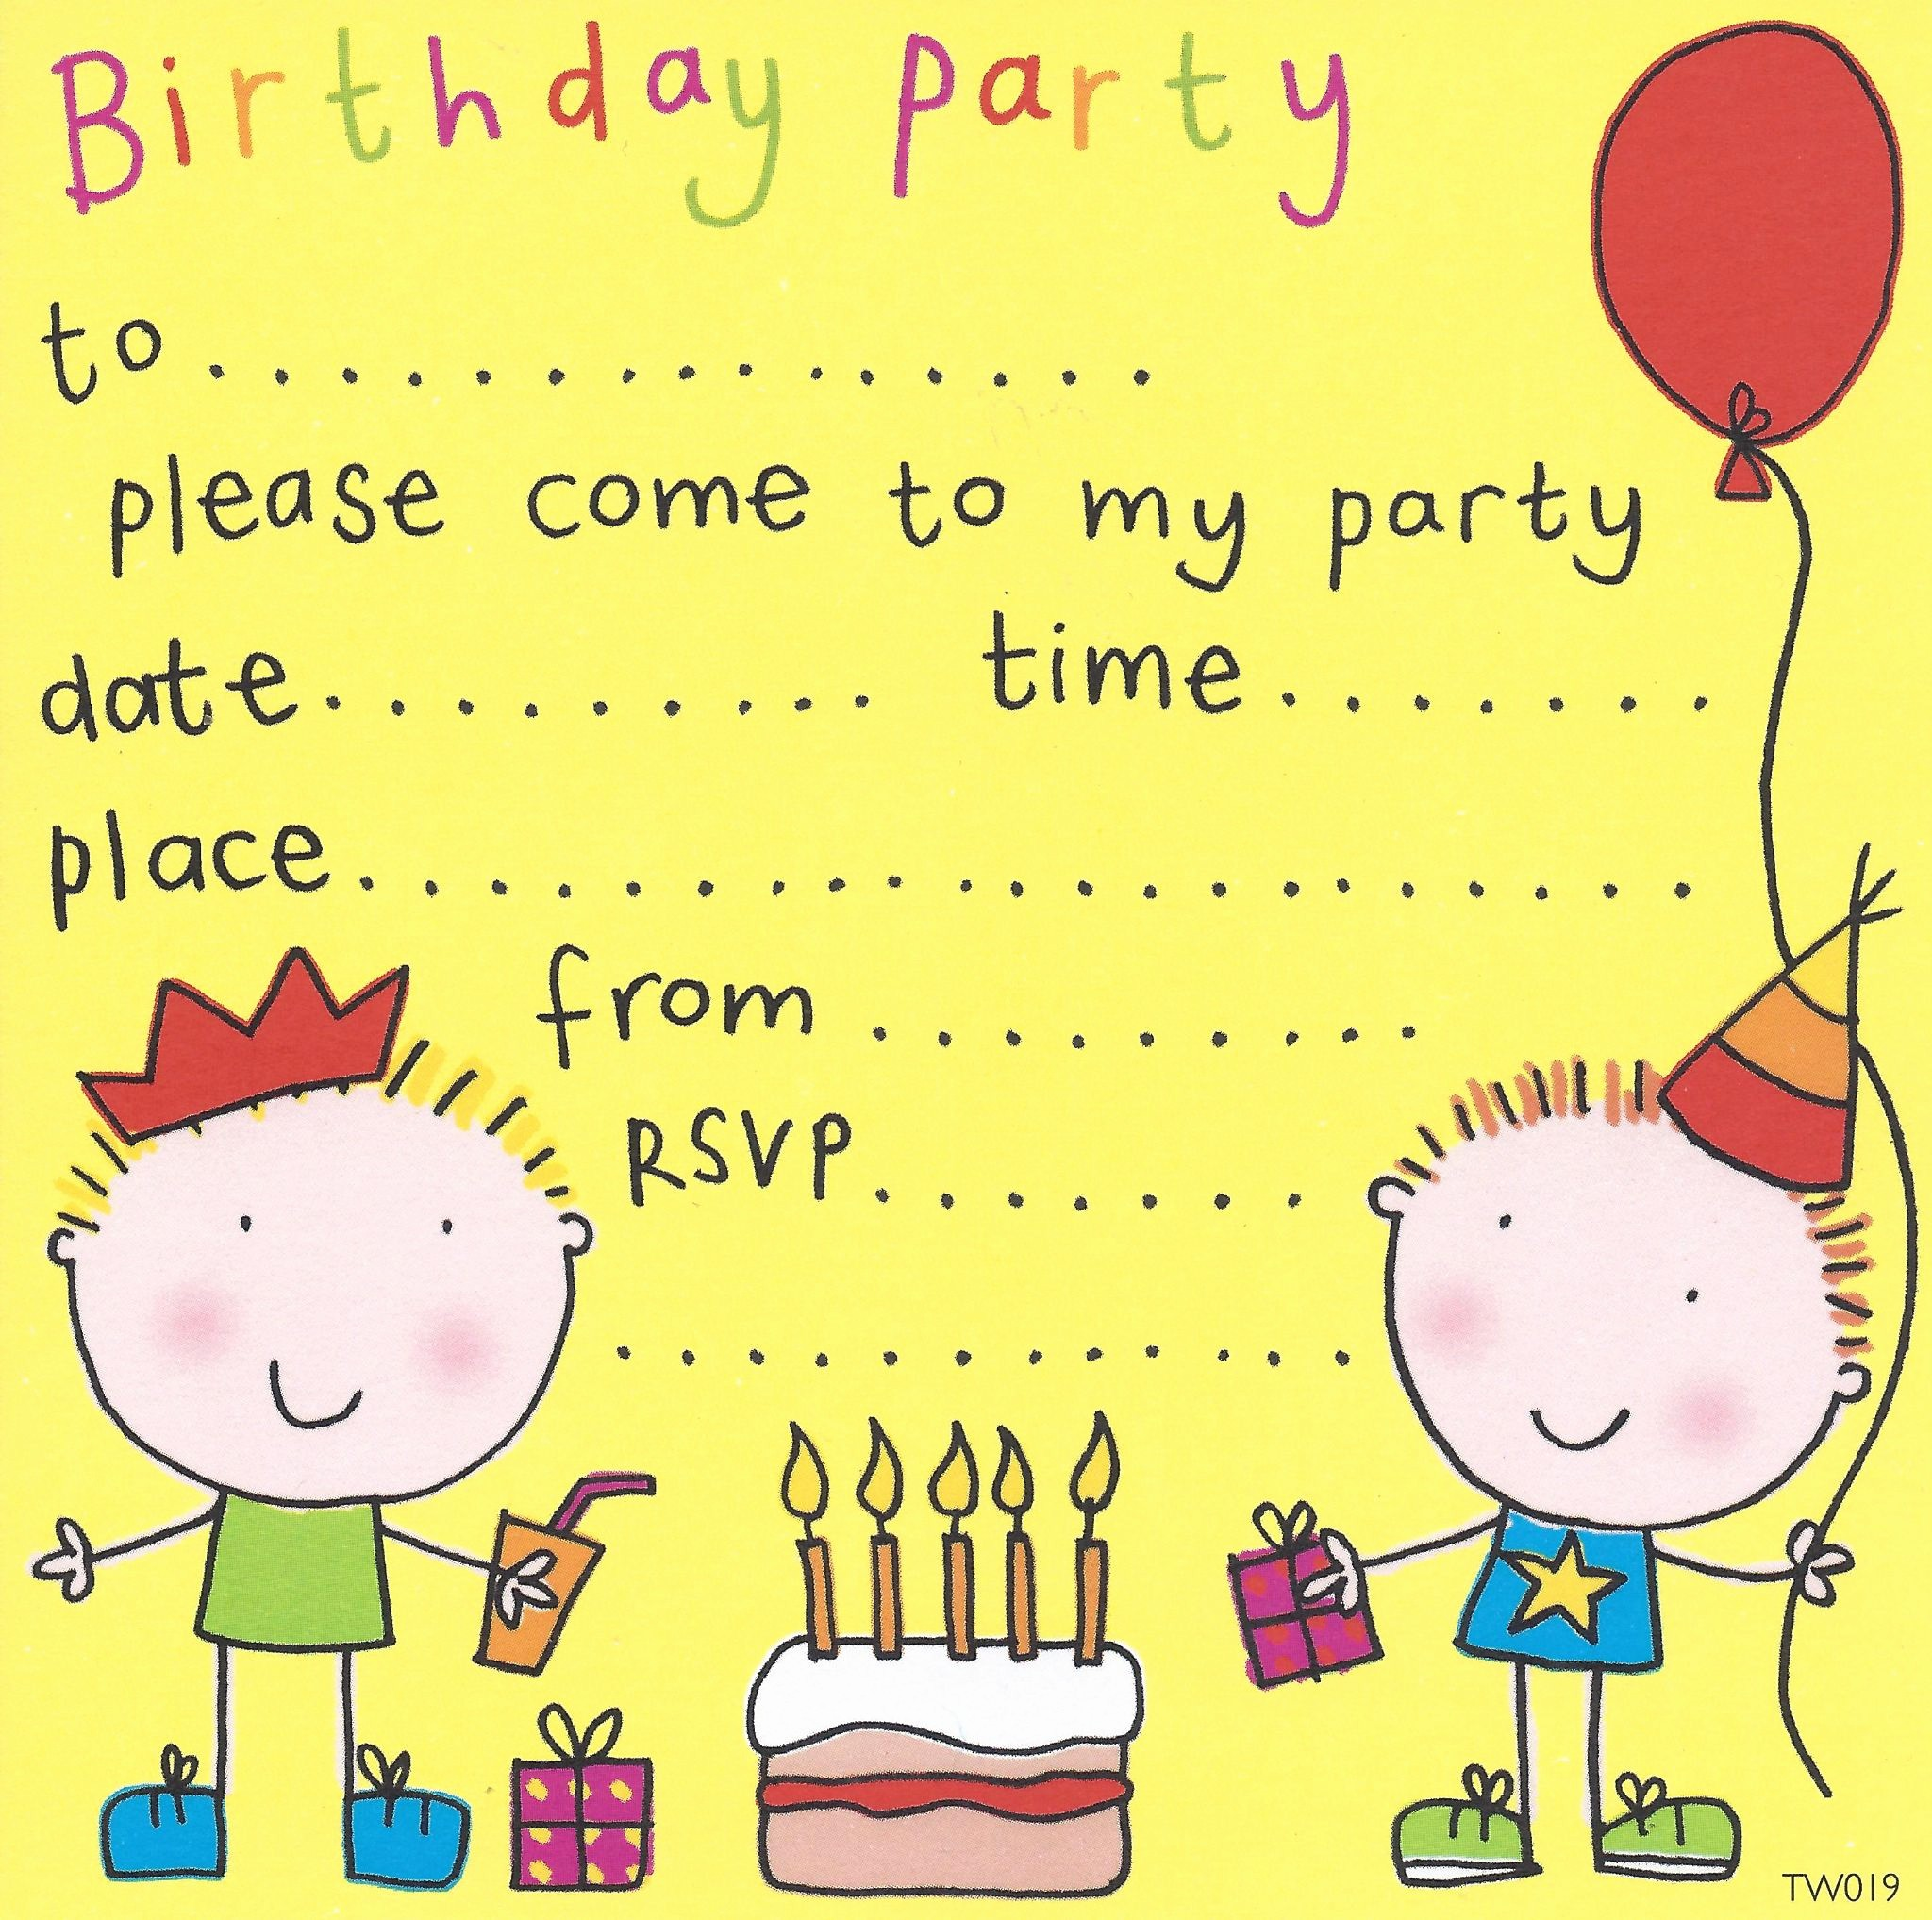 Kids Birthday Party Invites Templates Lovely Free Birthday Party Invites for Kids – Free Printable